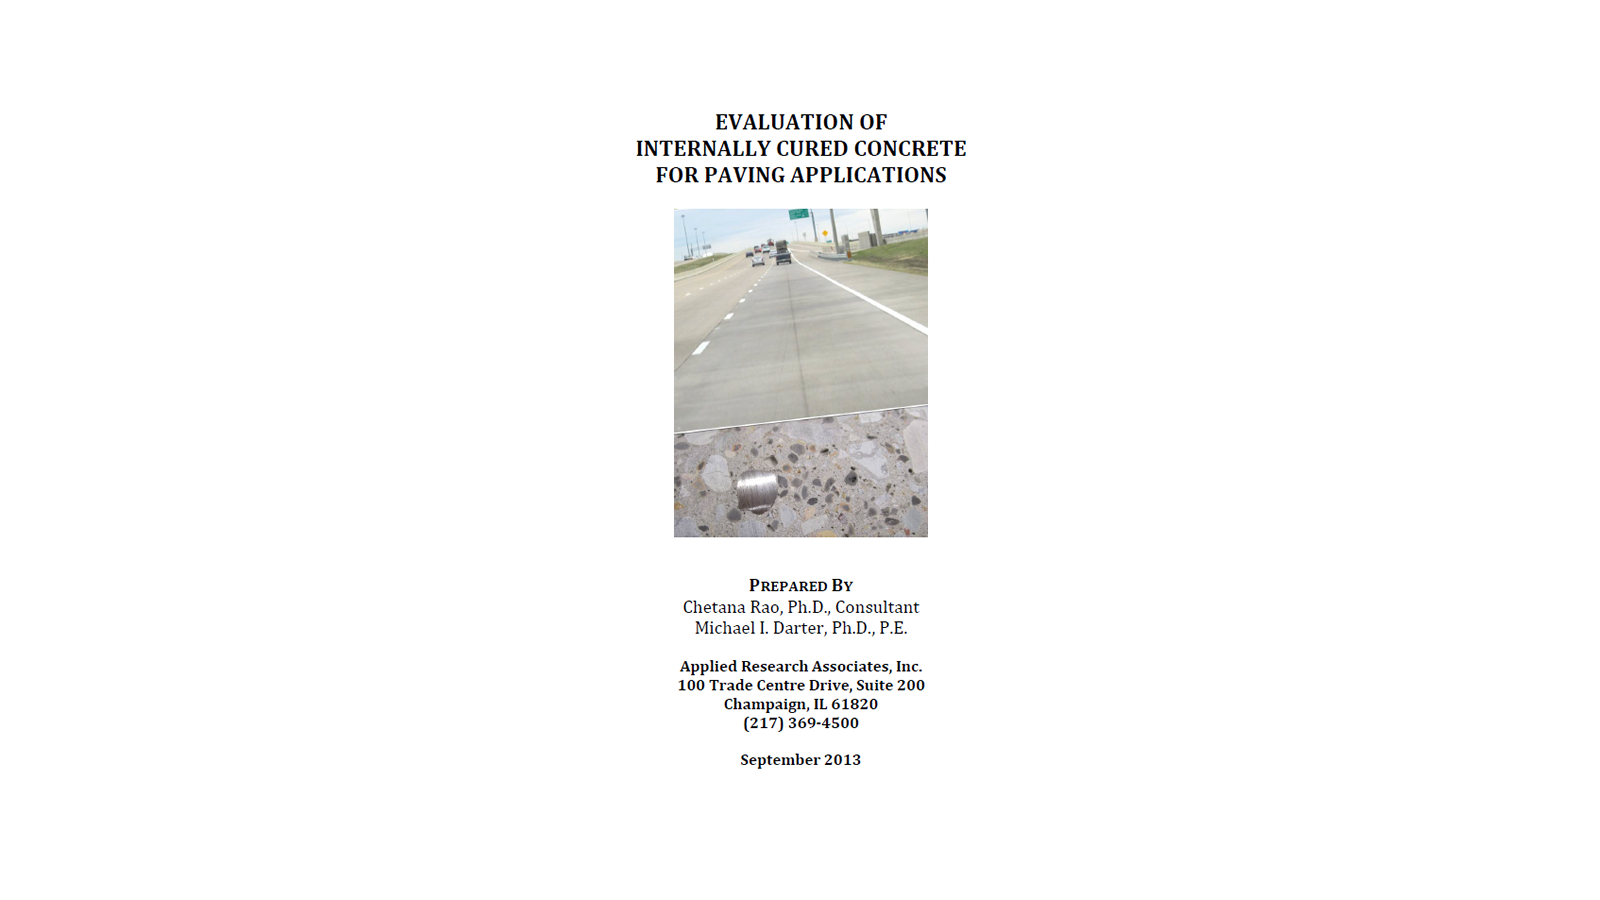 Evaluation of Internally Cured Concrete for Paving Applications